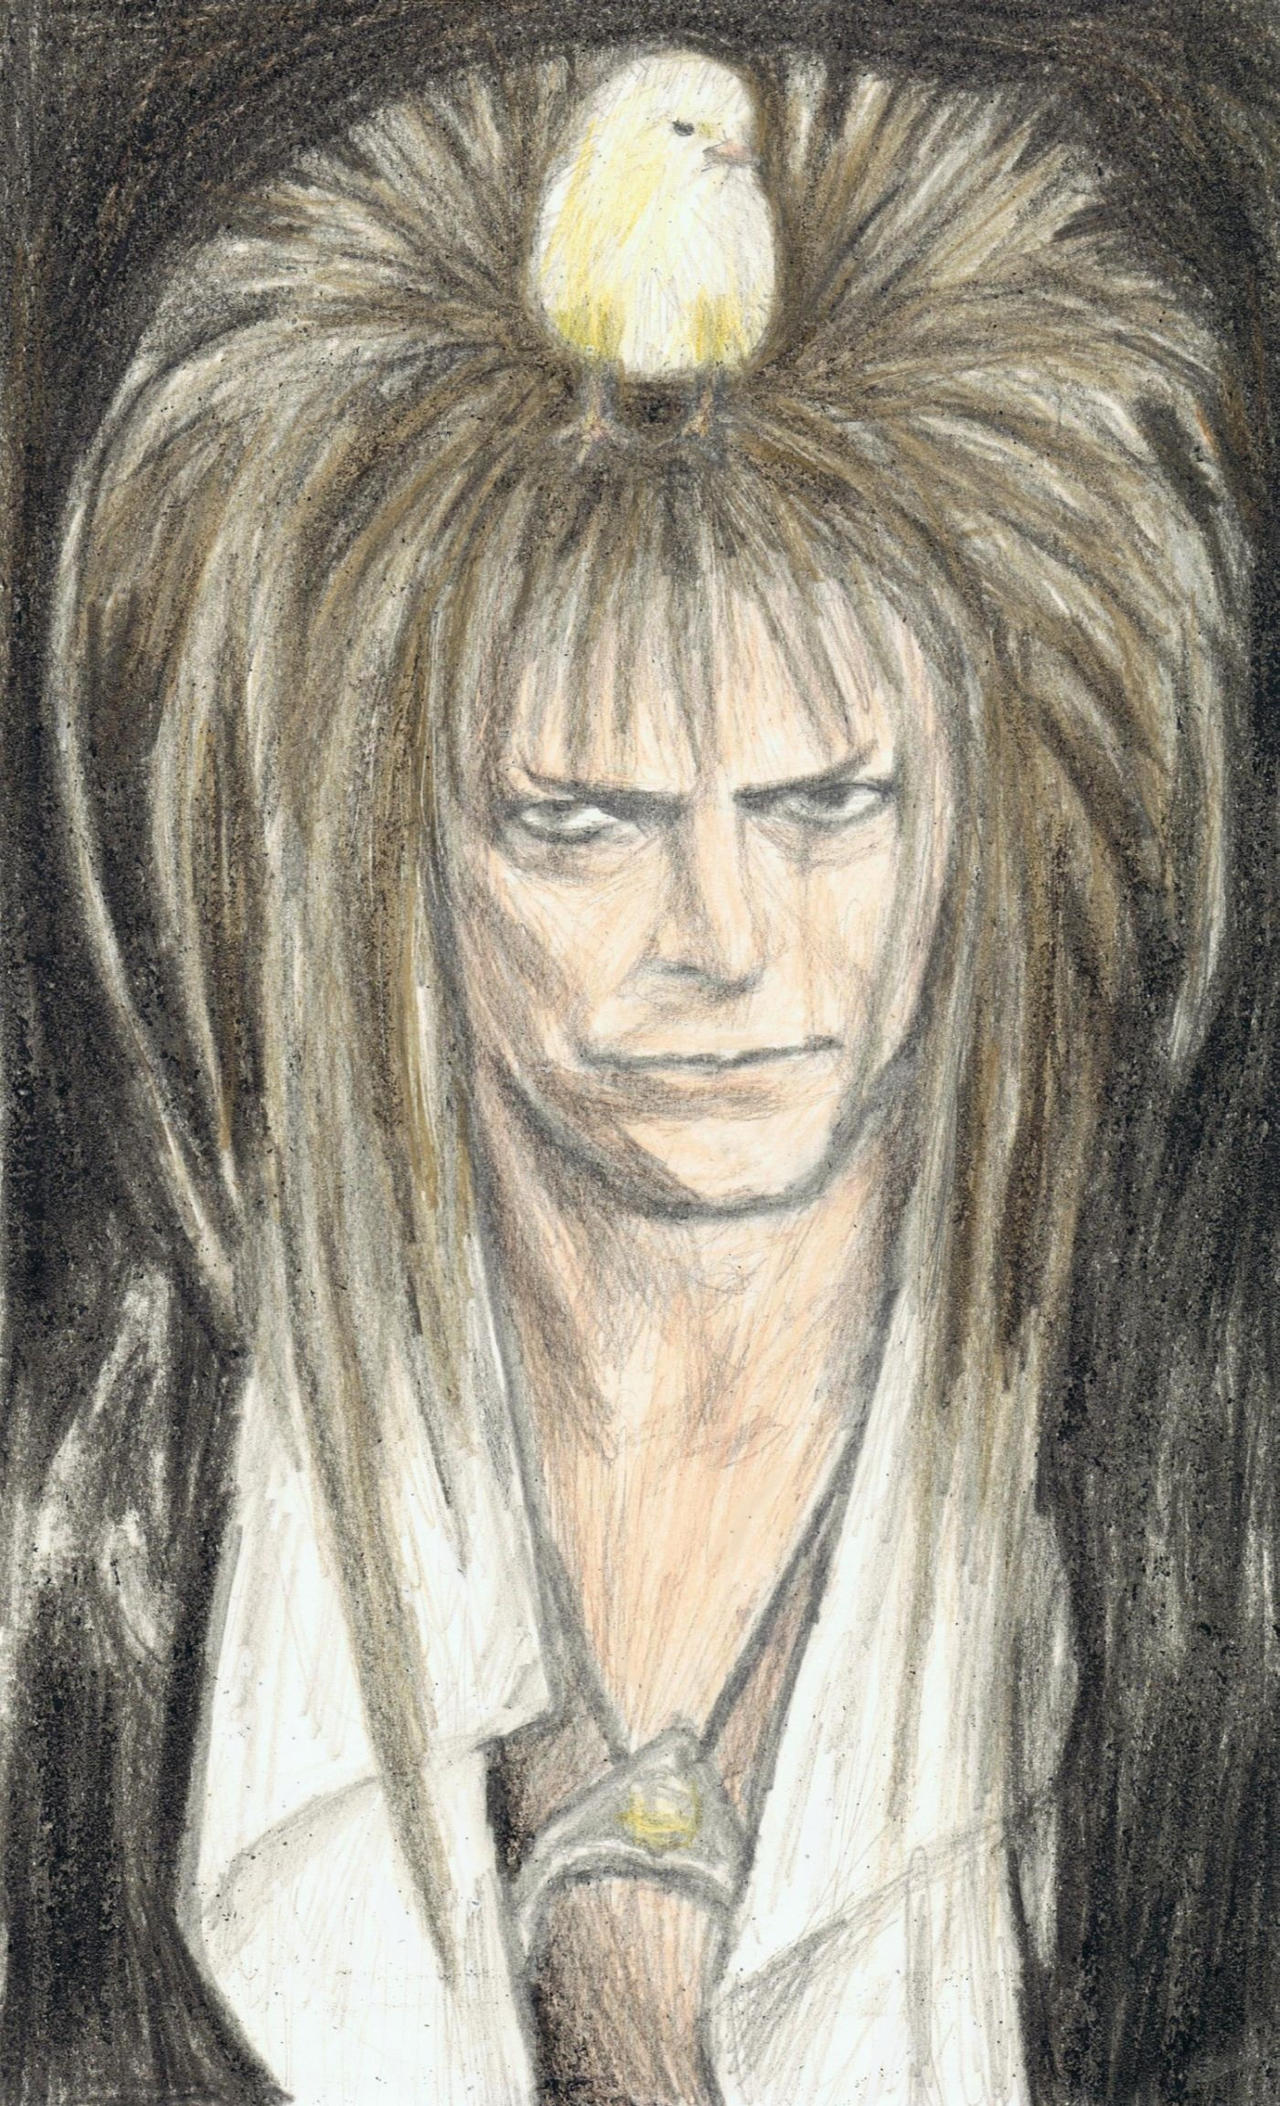 Goblin King with a chick on his head by gagambo